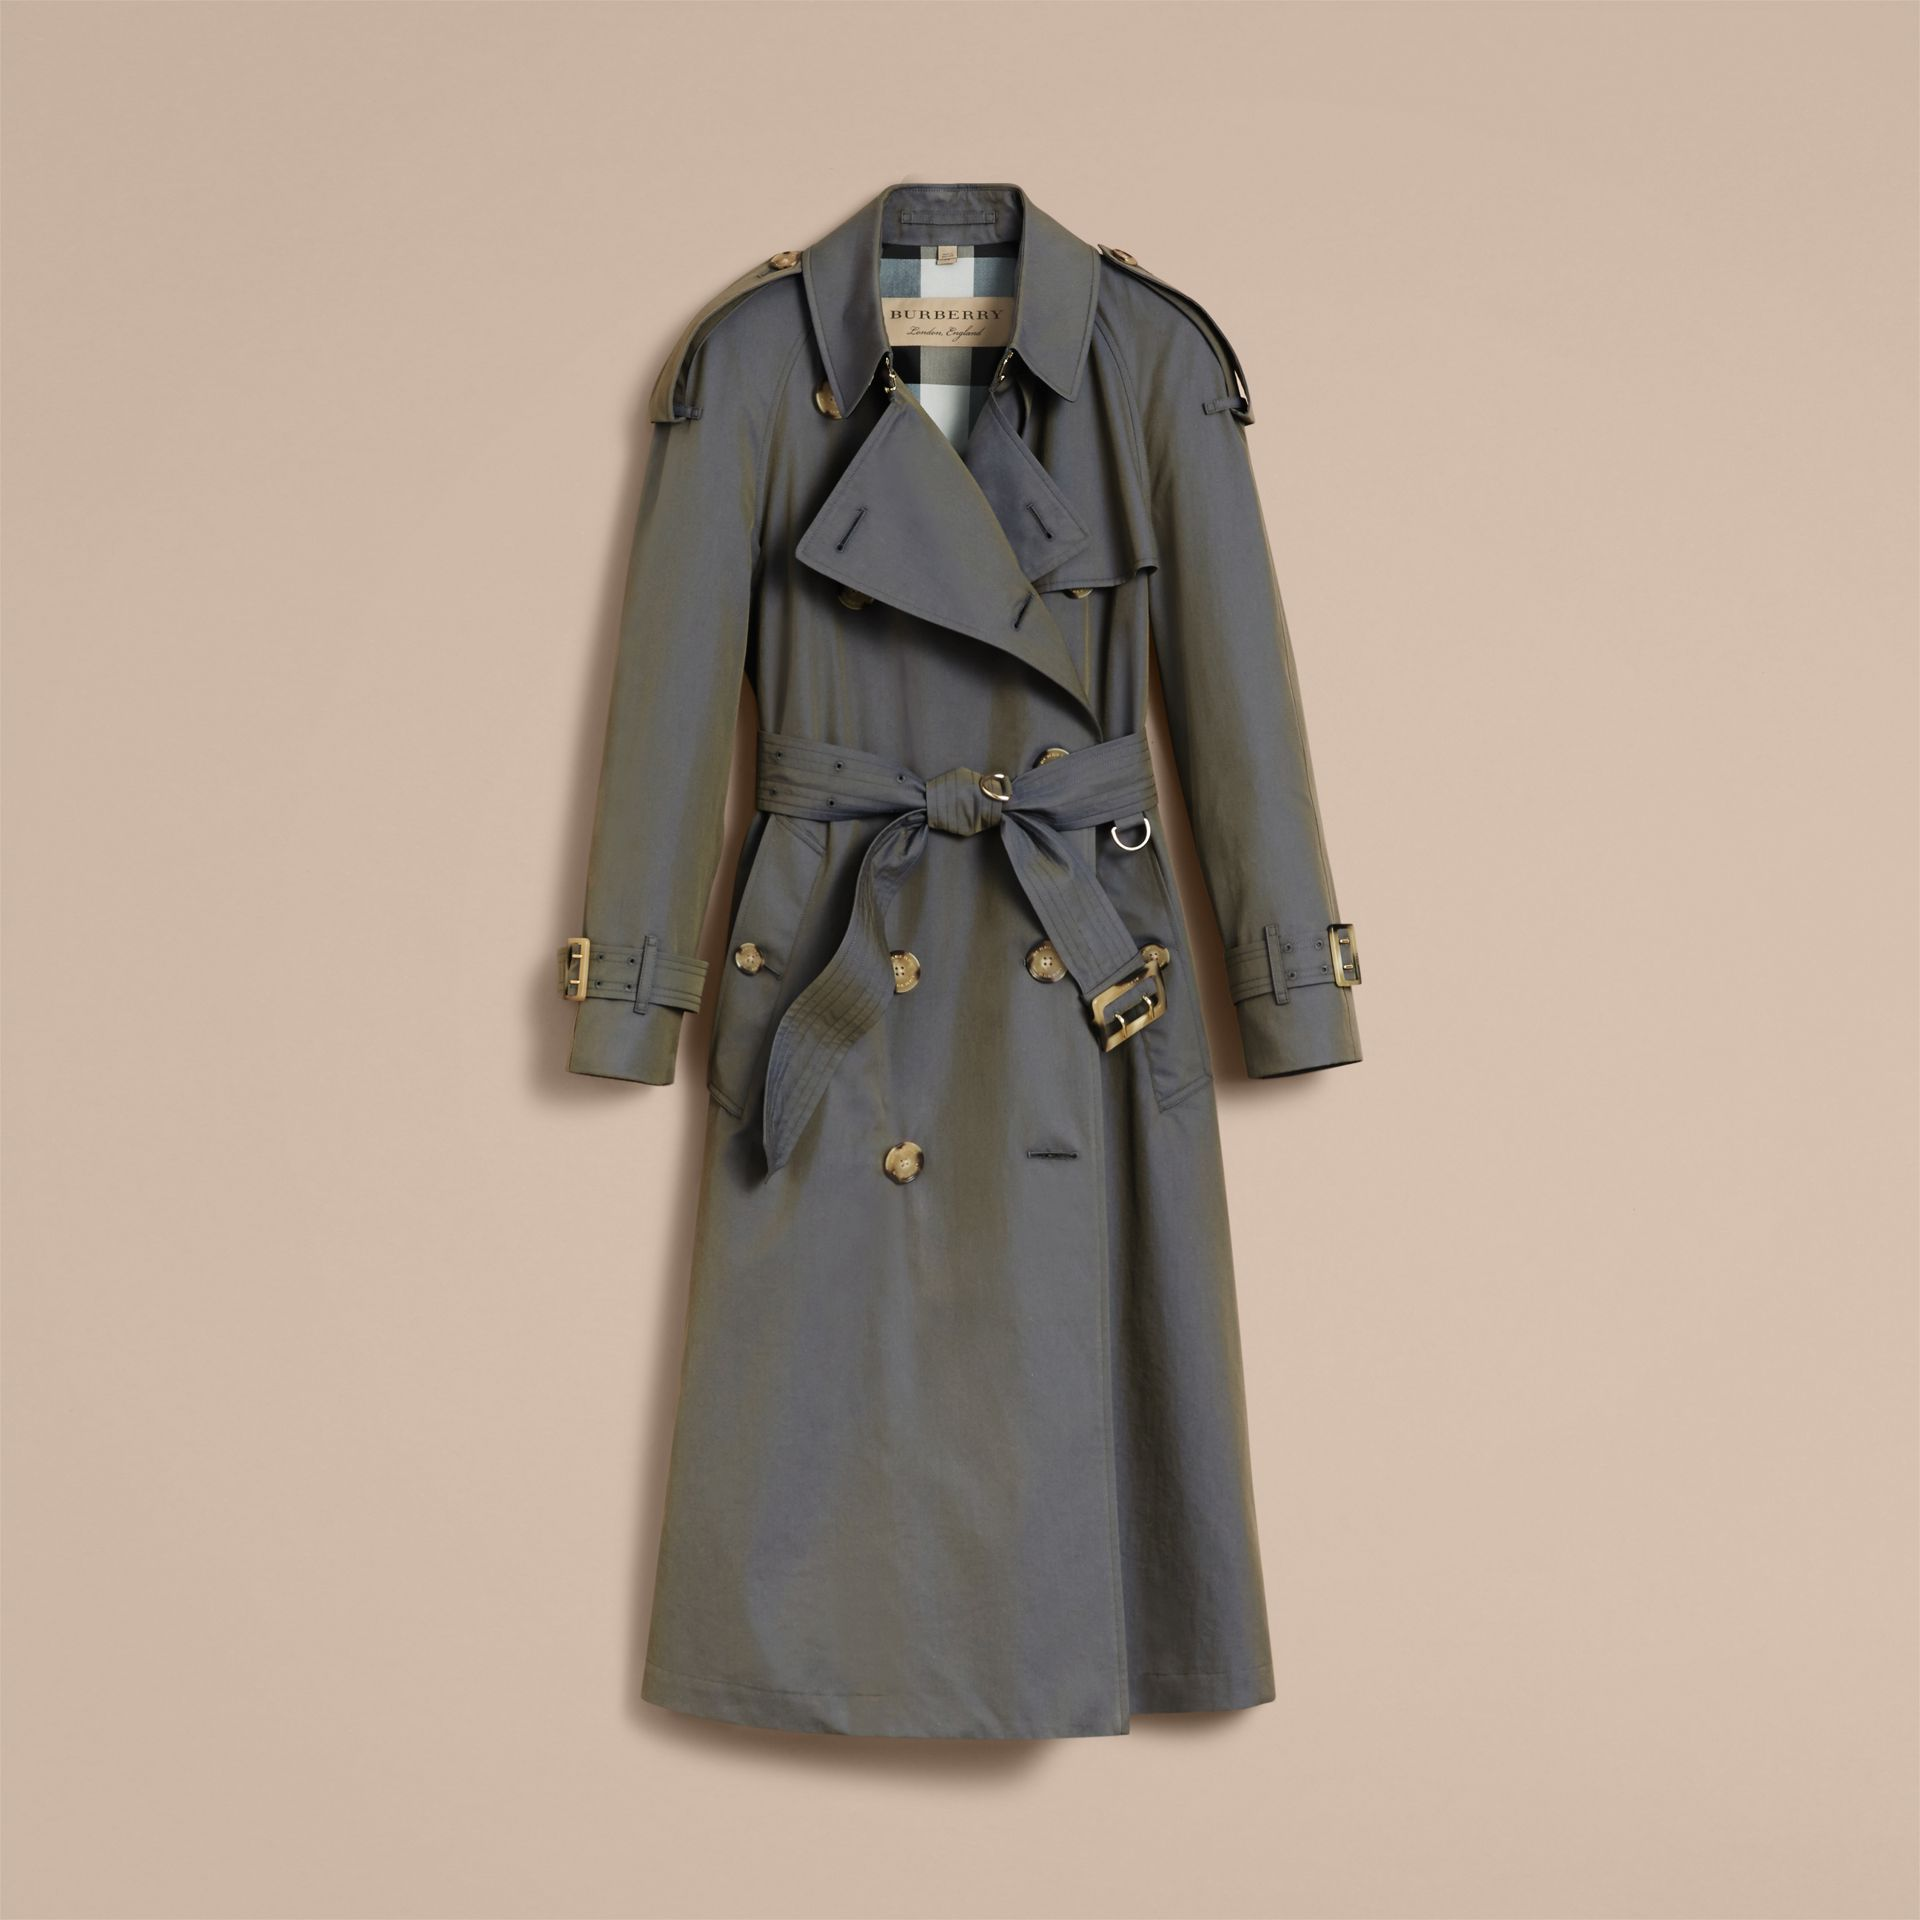 Tropical Gabardine Trench Coat in Storm Blue - Women | Burberry - gallery image 4